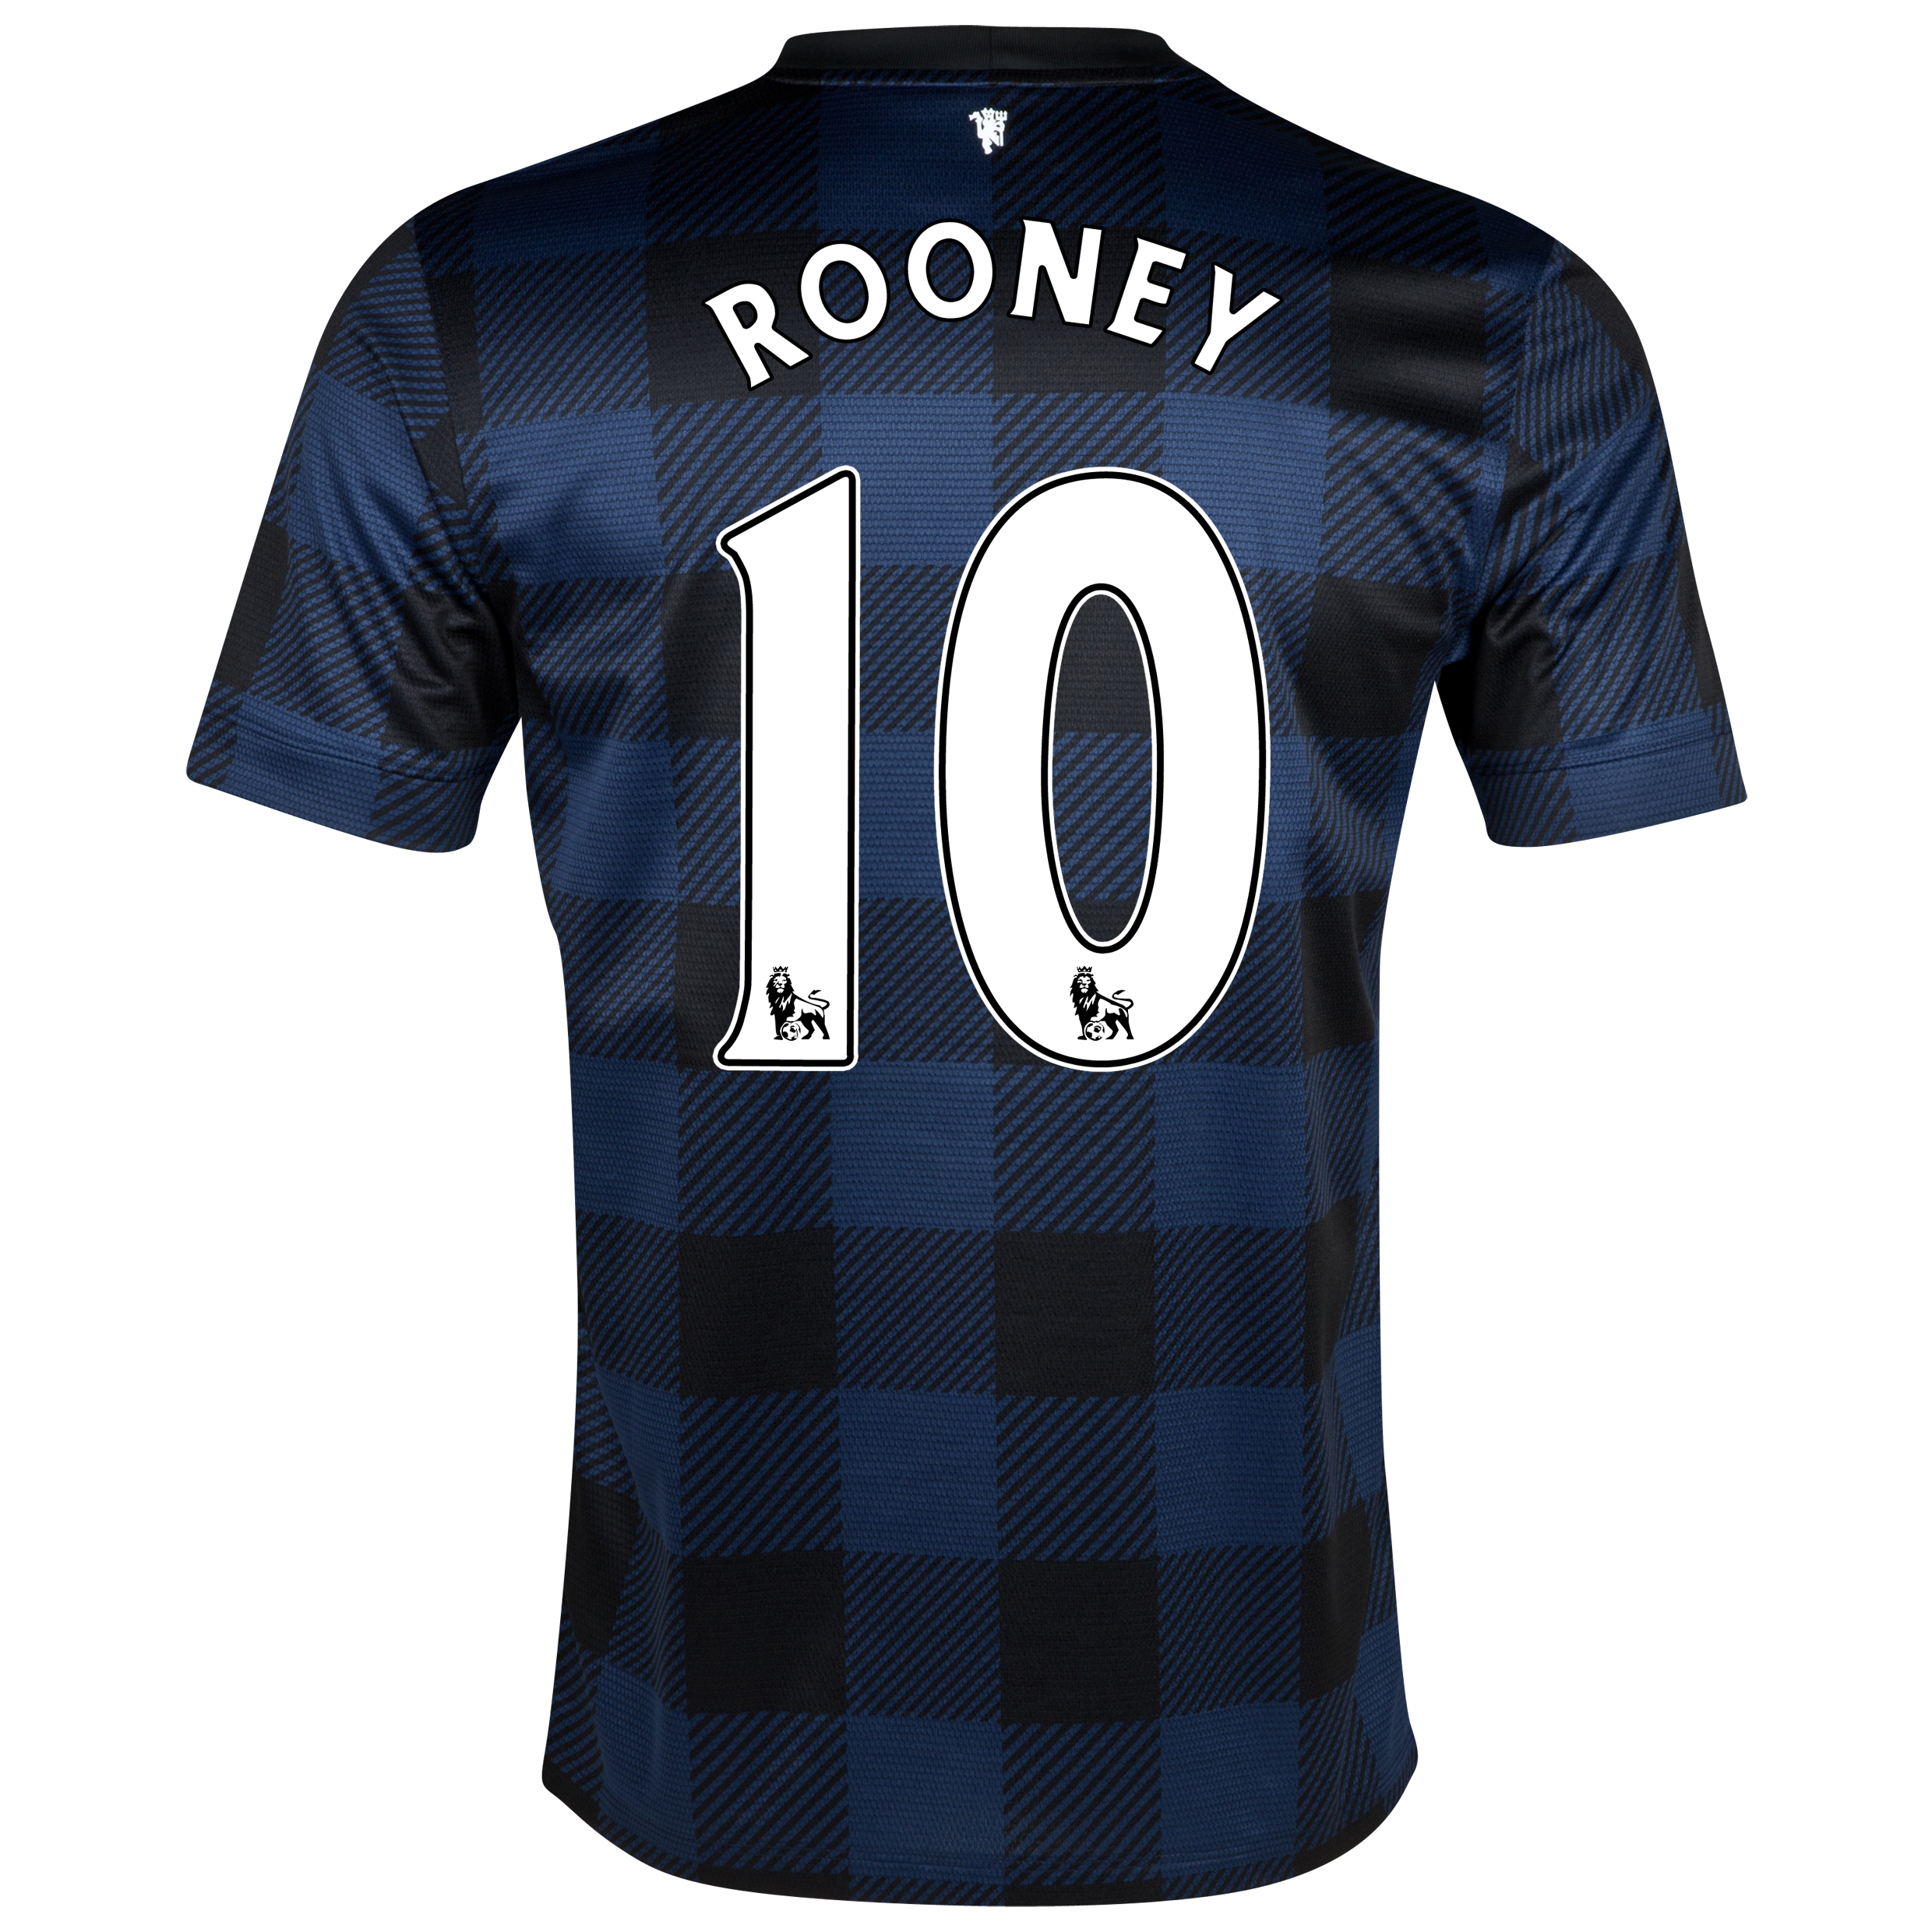 Manchester United Away Shirt 2013/14 with Rooney 10 printing